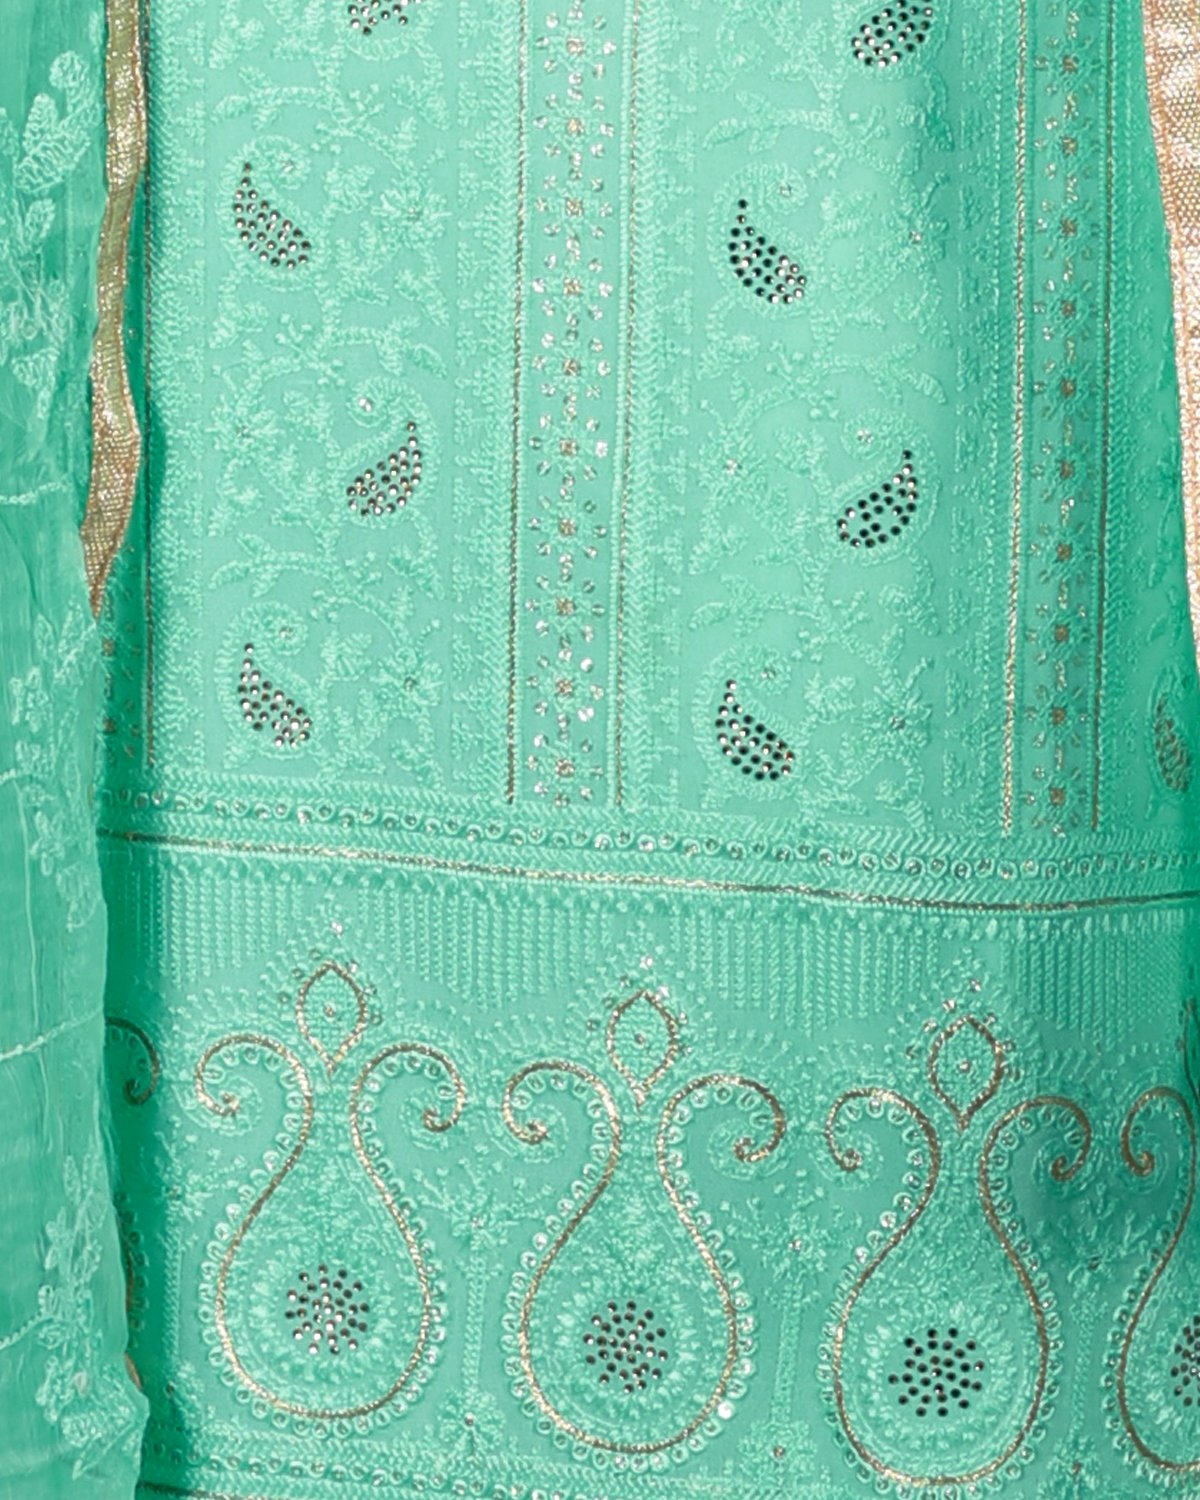 georget chikan embroided suit